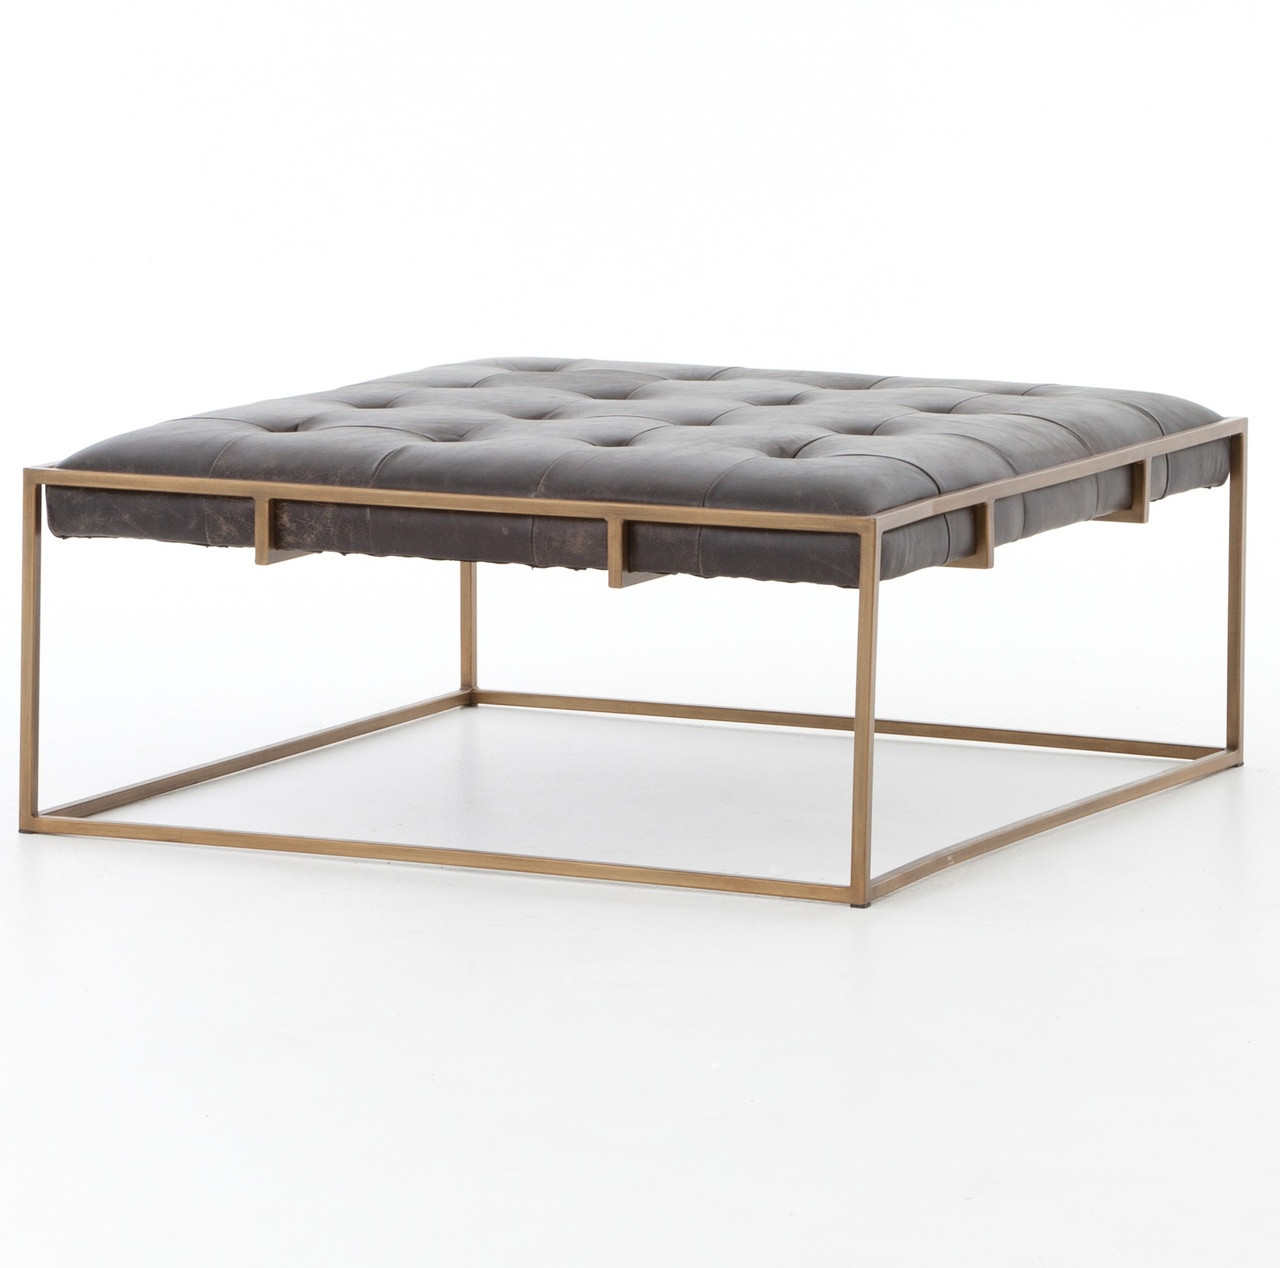 leather ottoman coffee table Oxford Tufted Black Leather Square Ottoman Coffee Table | Zin Home leather ottoman coffee table